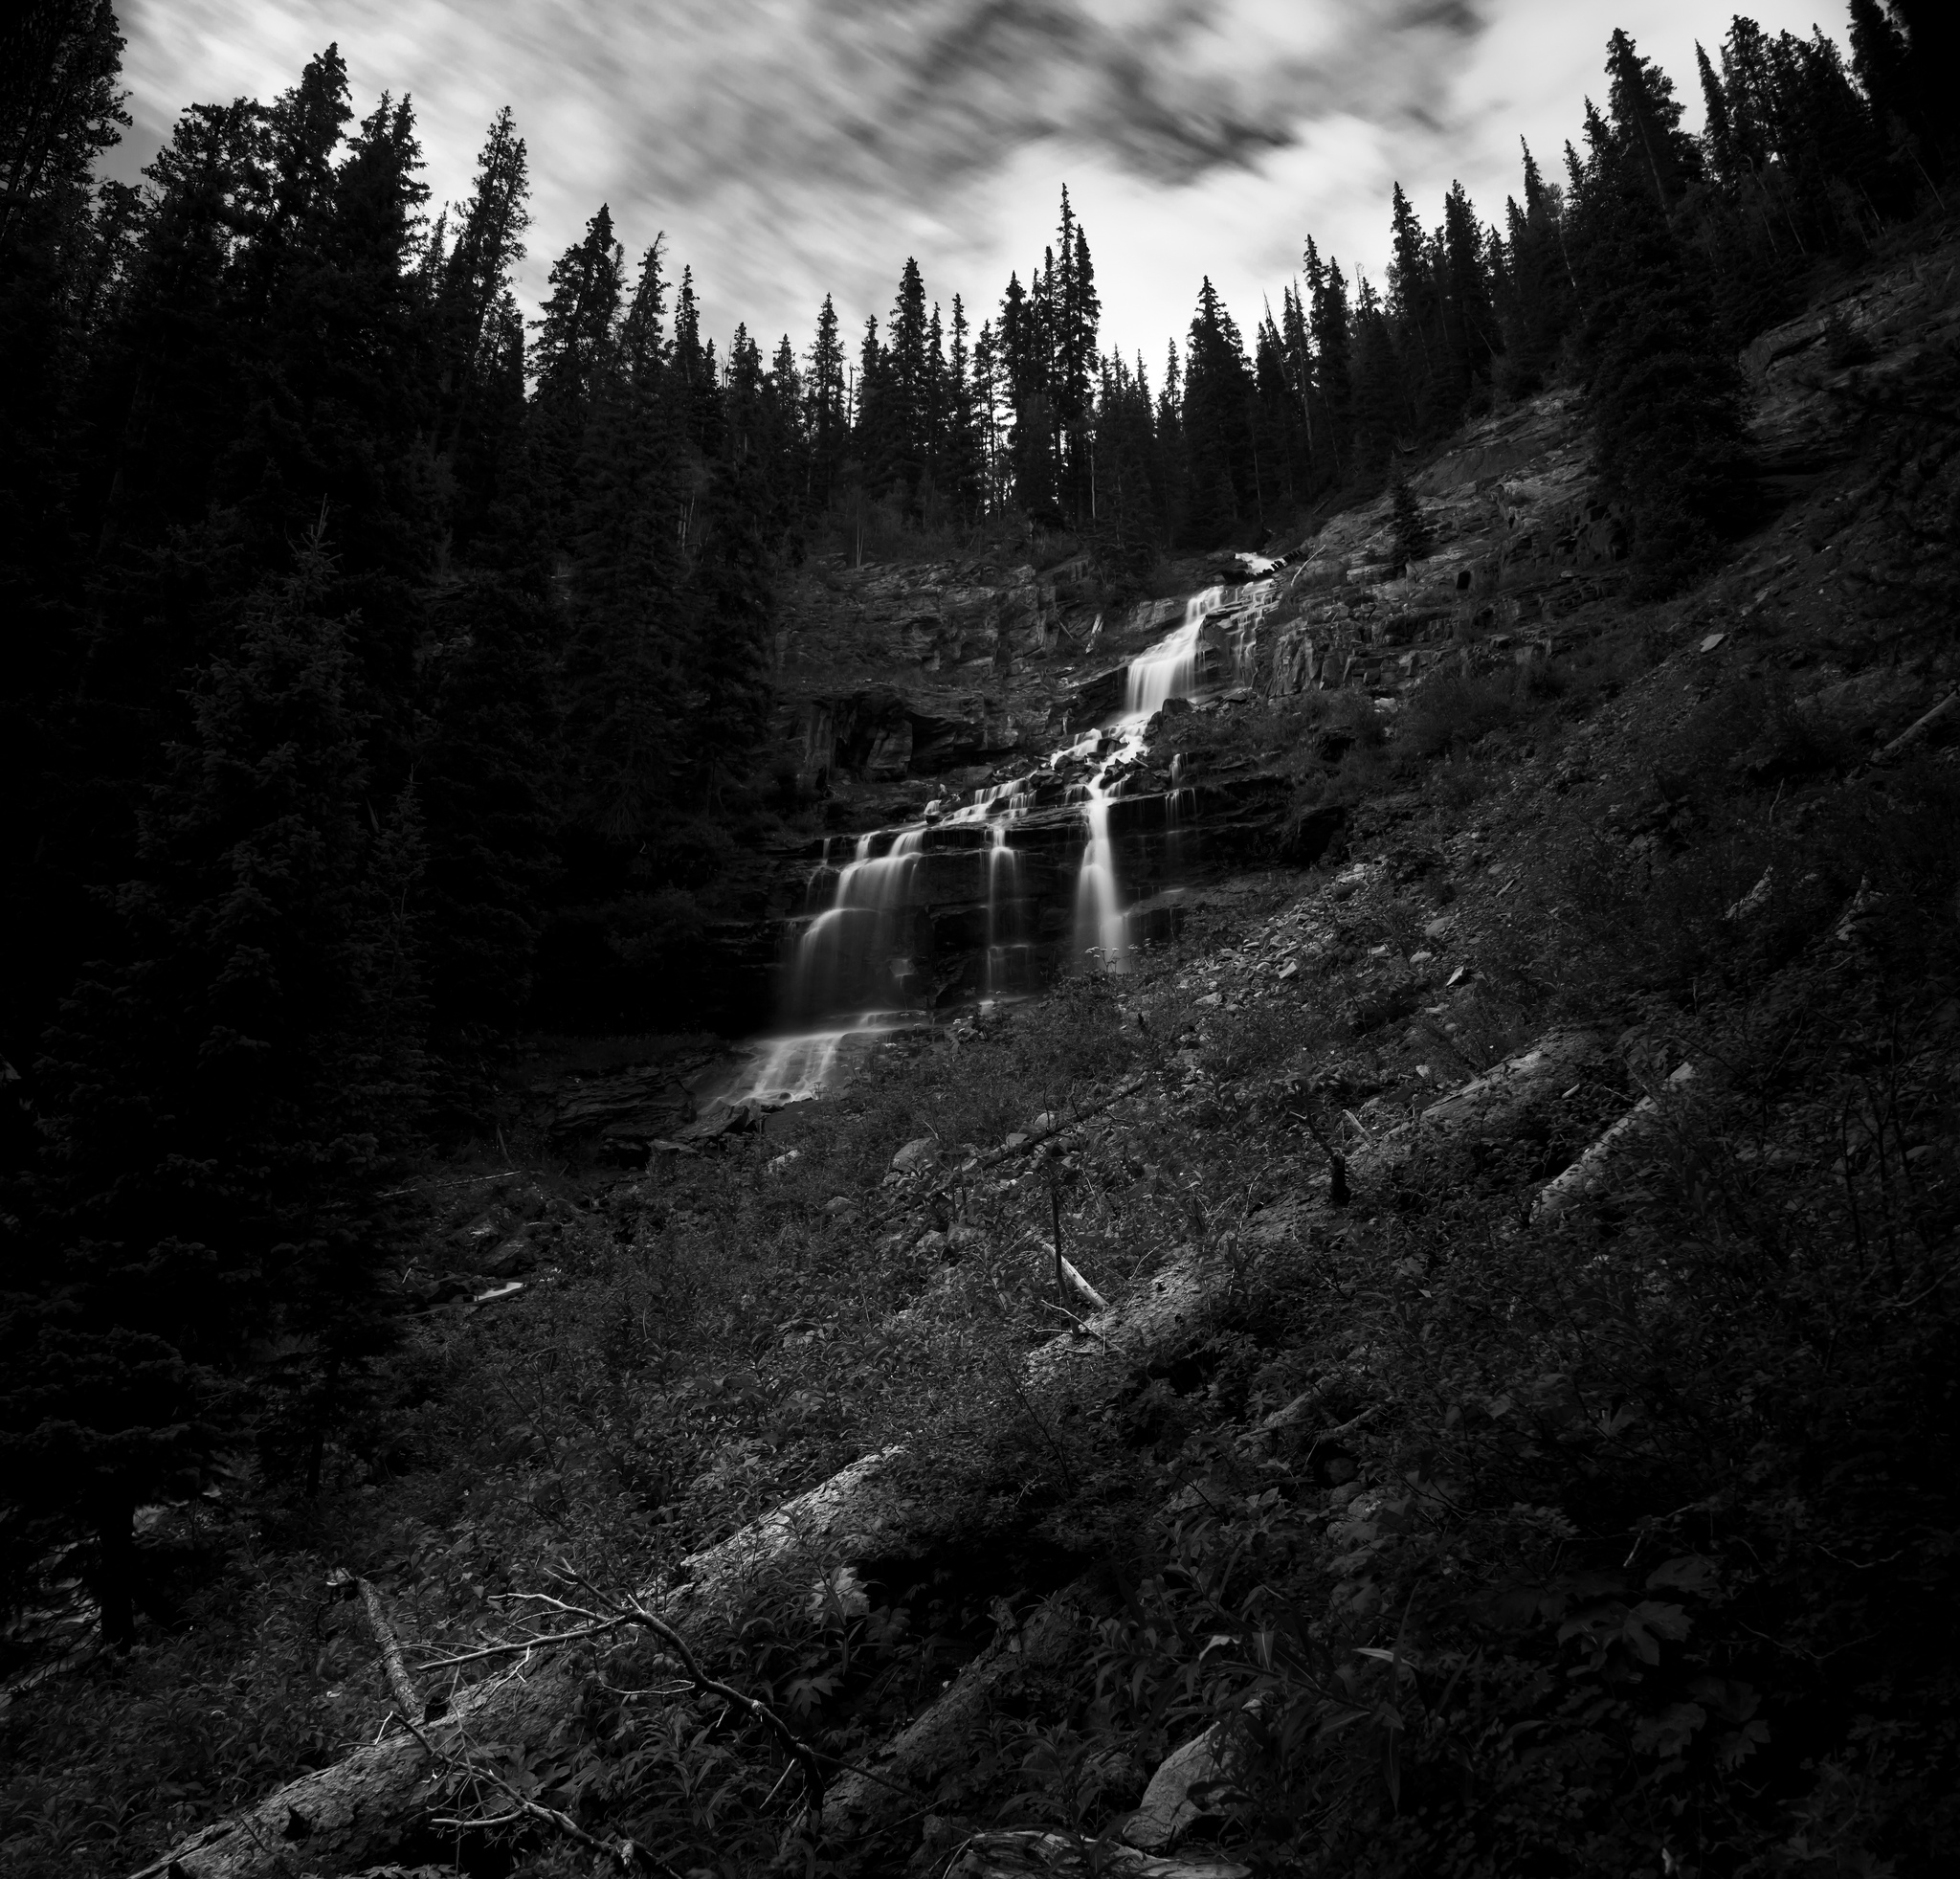 Random waterfall on the way up to Ice Lakes in Colorado shot at f stop 22 with an ND filter to extend the exposure to 8 seconds